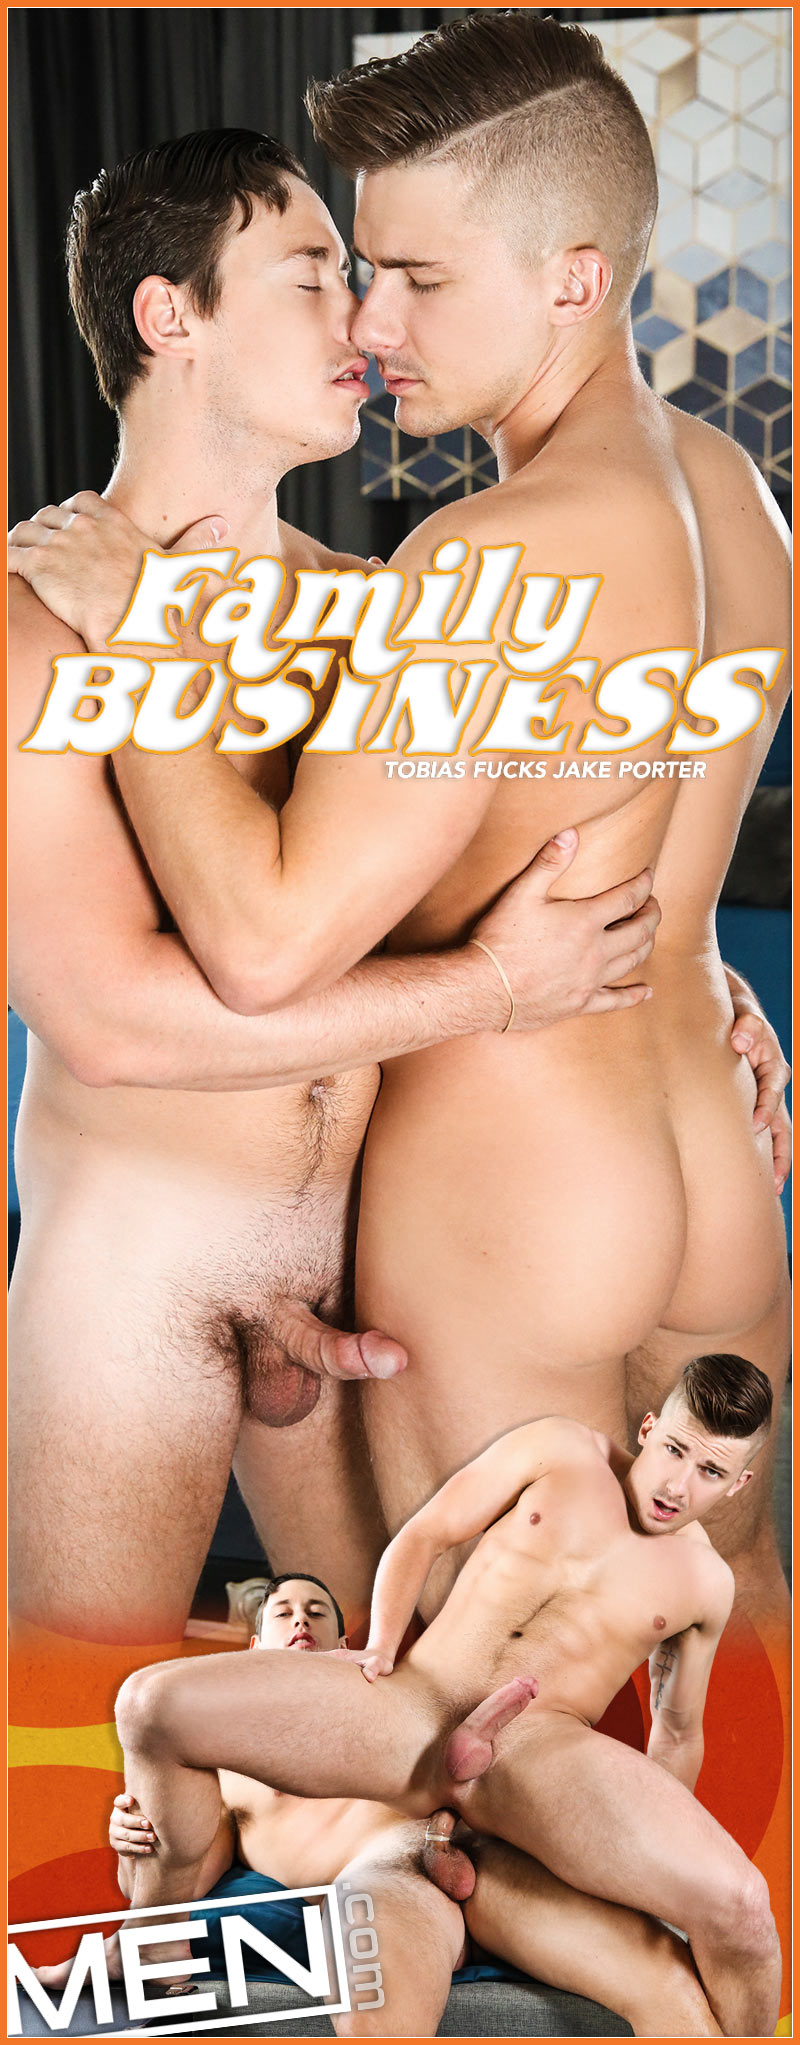 Family Business, Part 3 (Tobias Fucks Jake Porter) at Drill My Hole